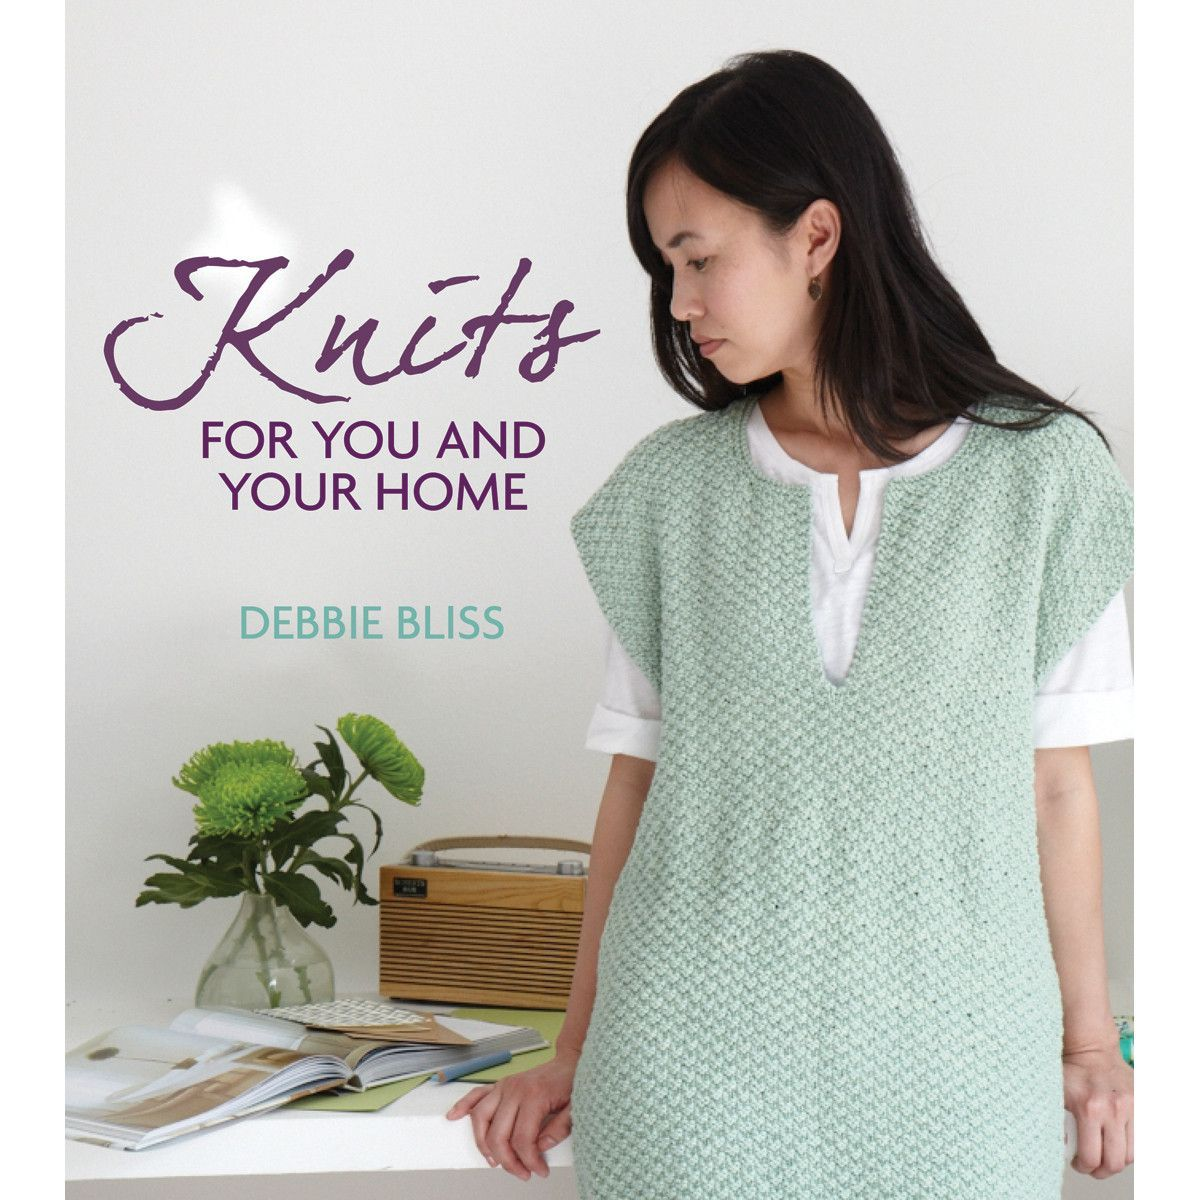 Trafalgar Square Books-Knits For You And Your Home